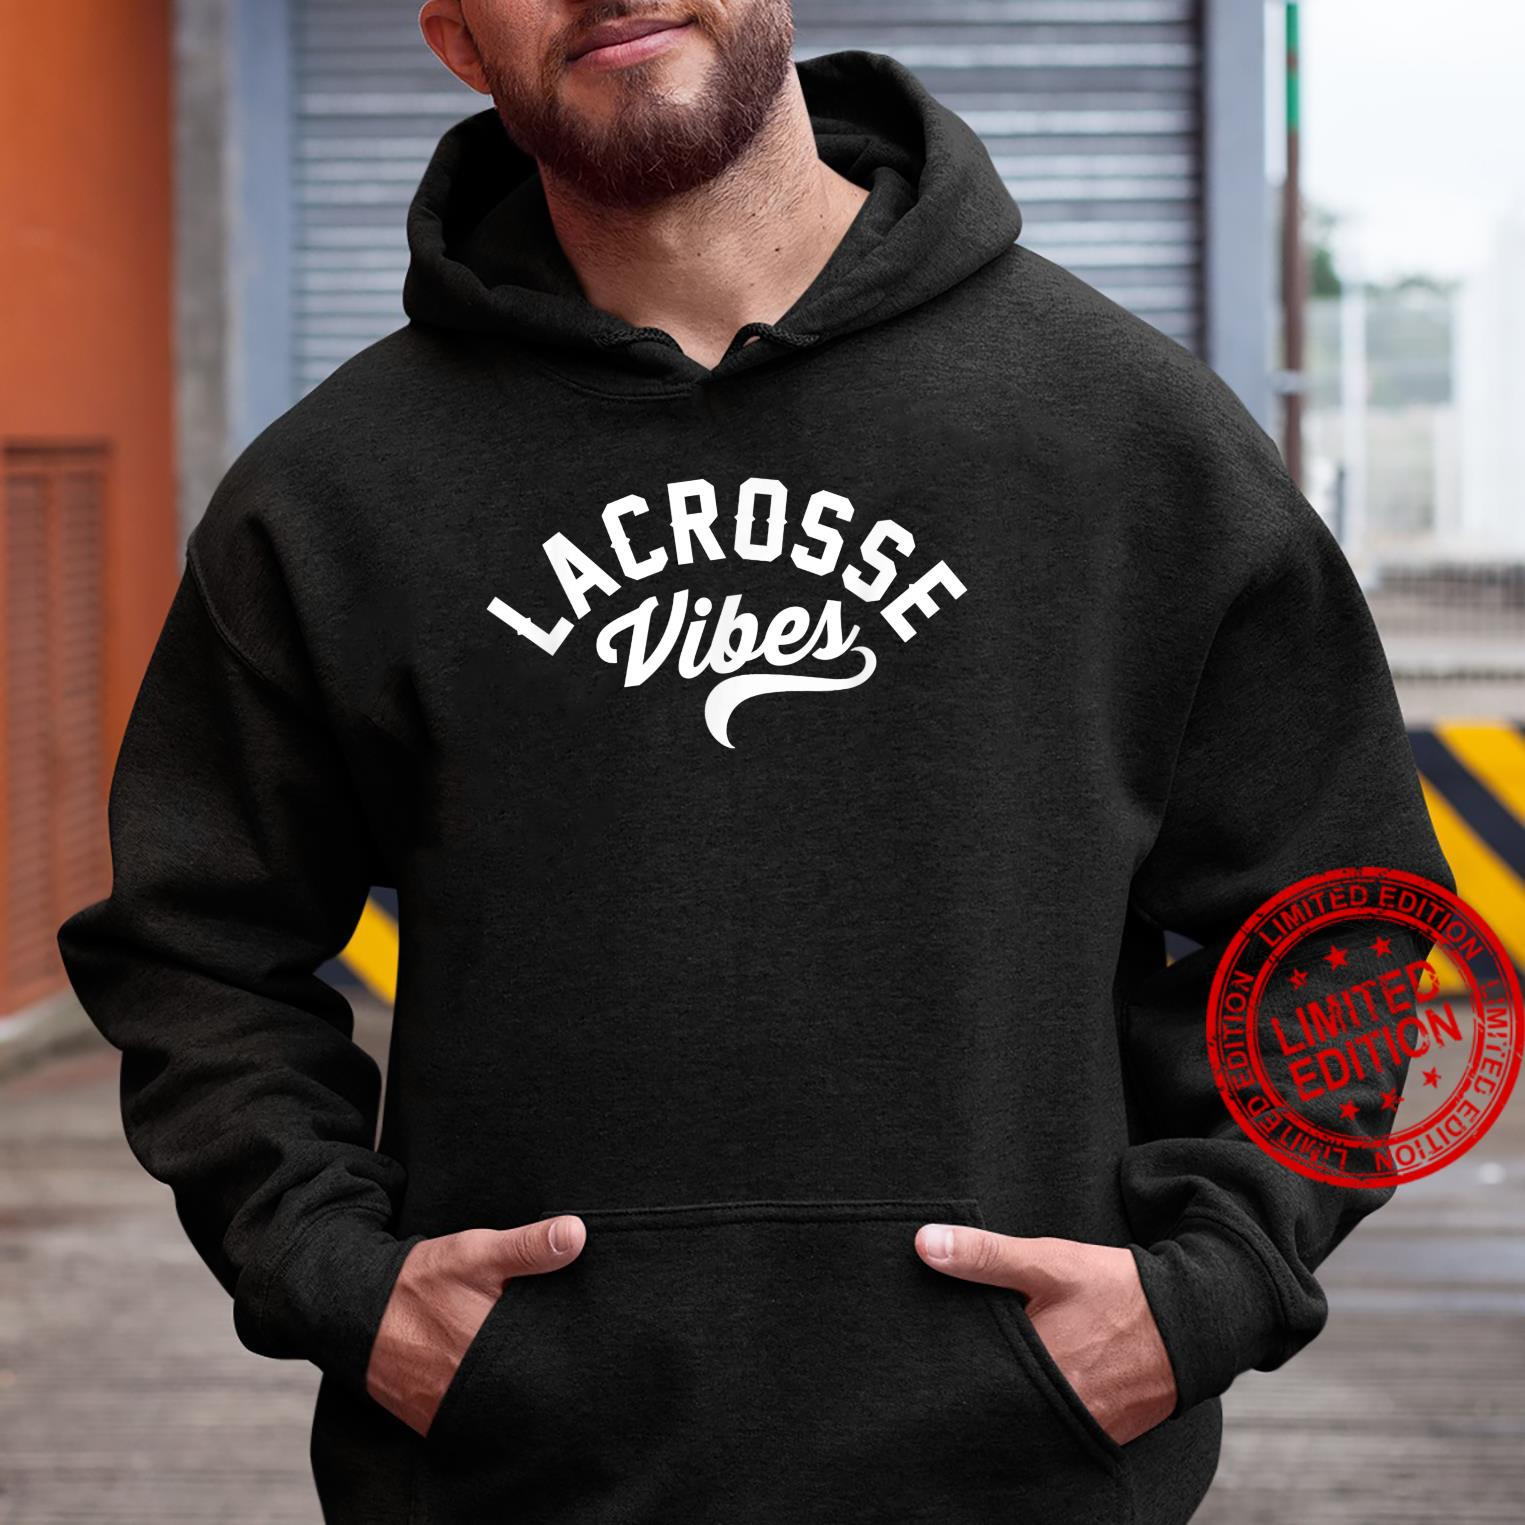 Lacrosse Vibes Ready for Gameday Lax Shirt hoodie